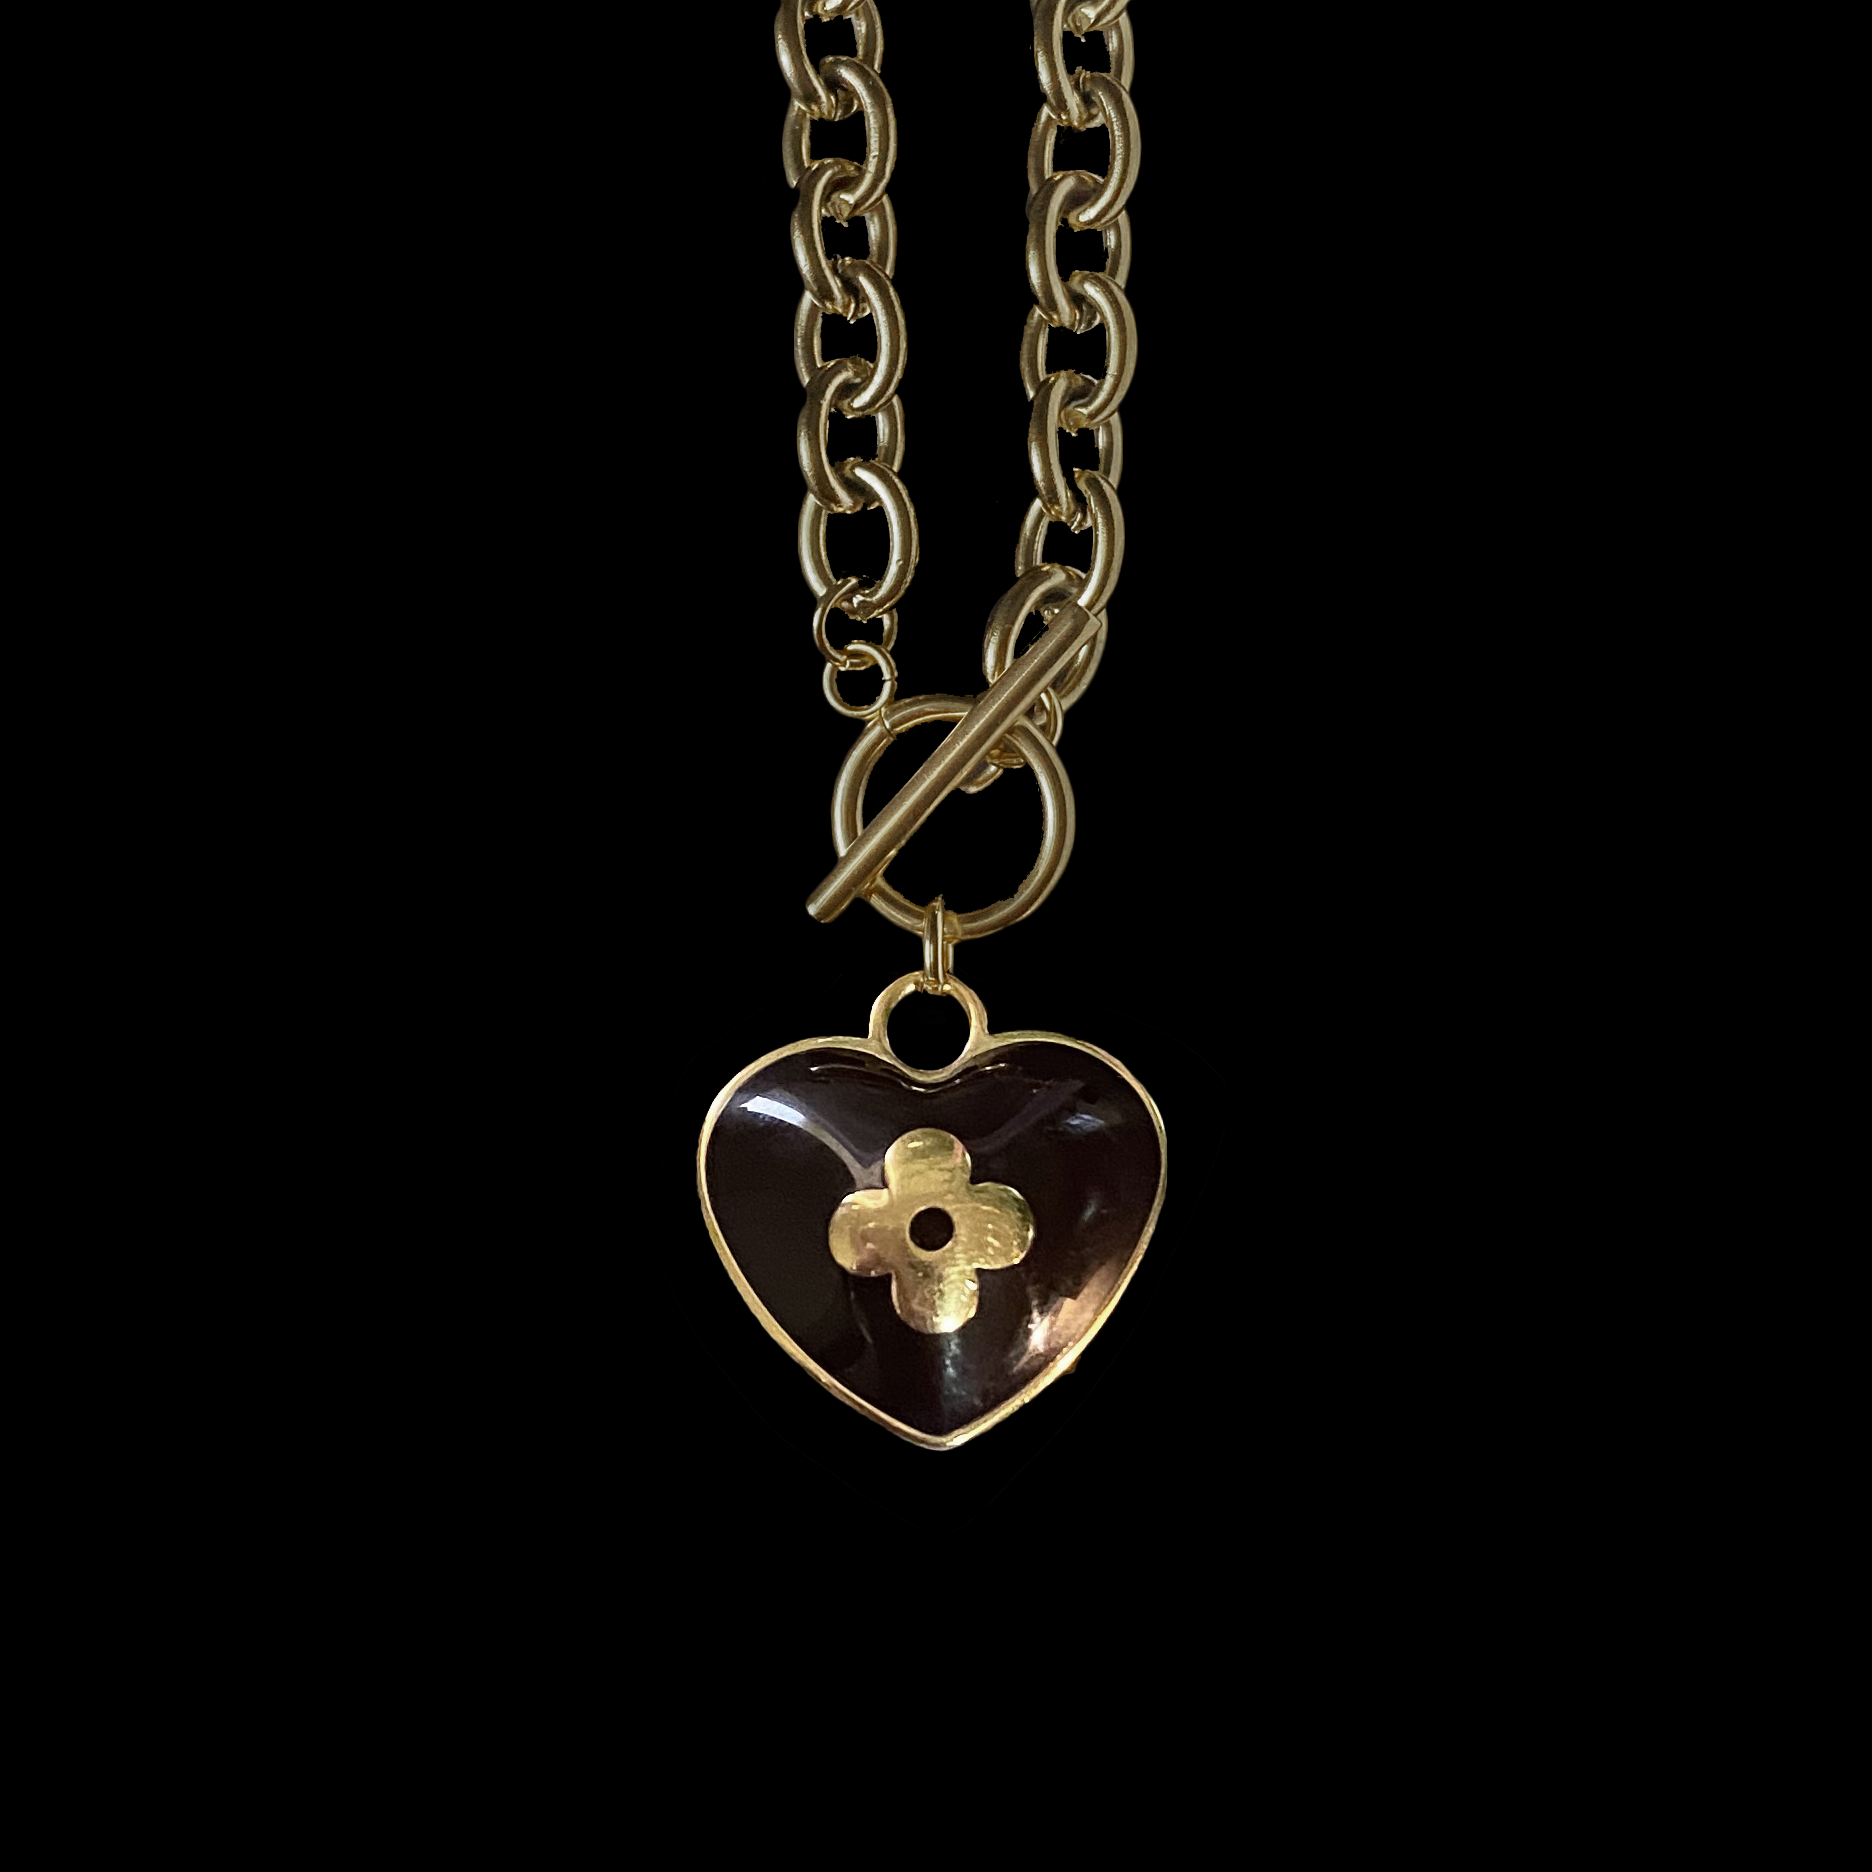 LV Love Chain - Flower